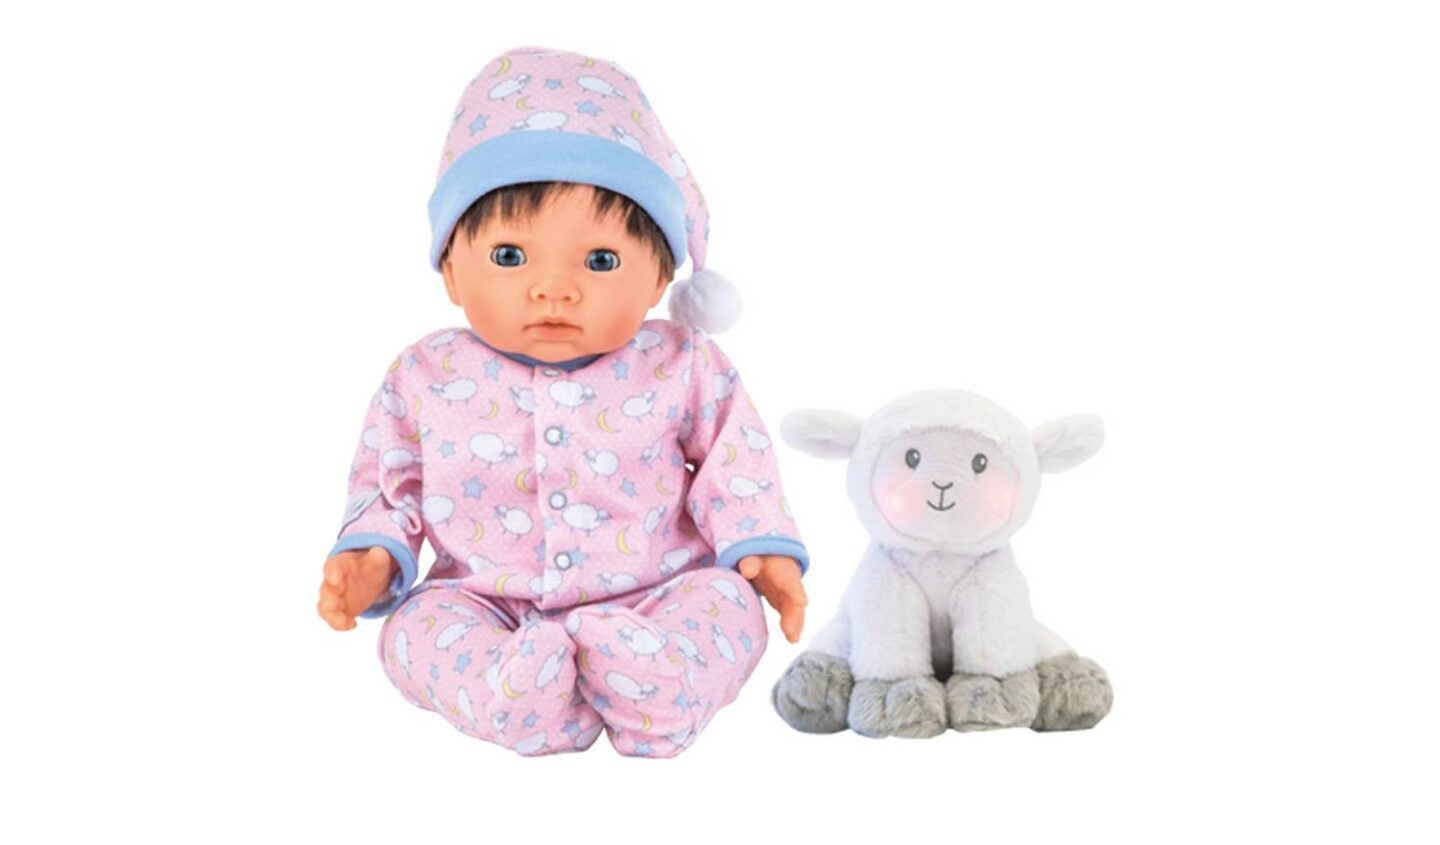 Tiny Treasures Twin Dolls Set, Blog Anniversary Giveaway, Win, Tiny Treasures, Dolls, Children's Toys, Argos, Twin Dolls, Baby Doll, The Frenchie Mummy